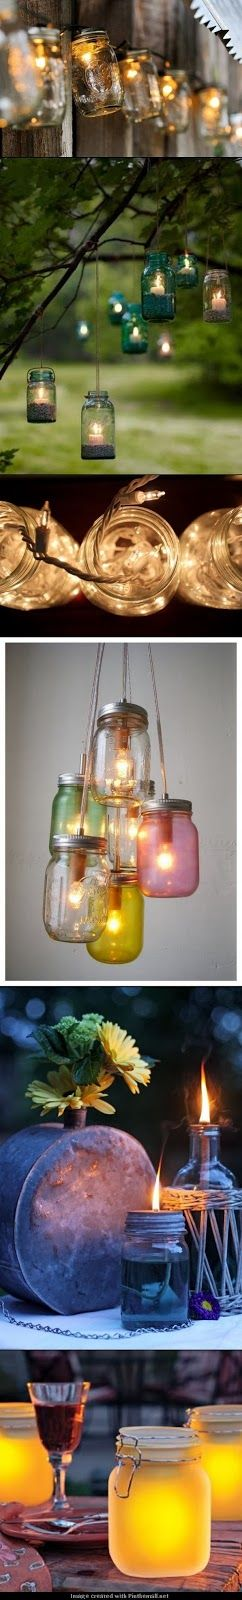 DIY HOME DECOR AND INTERIOR: 5 Great Outdoor Mason Jar Lighting Projects